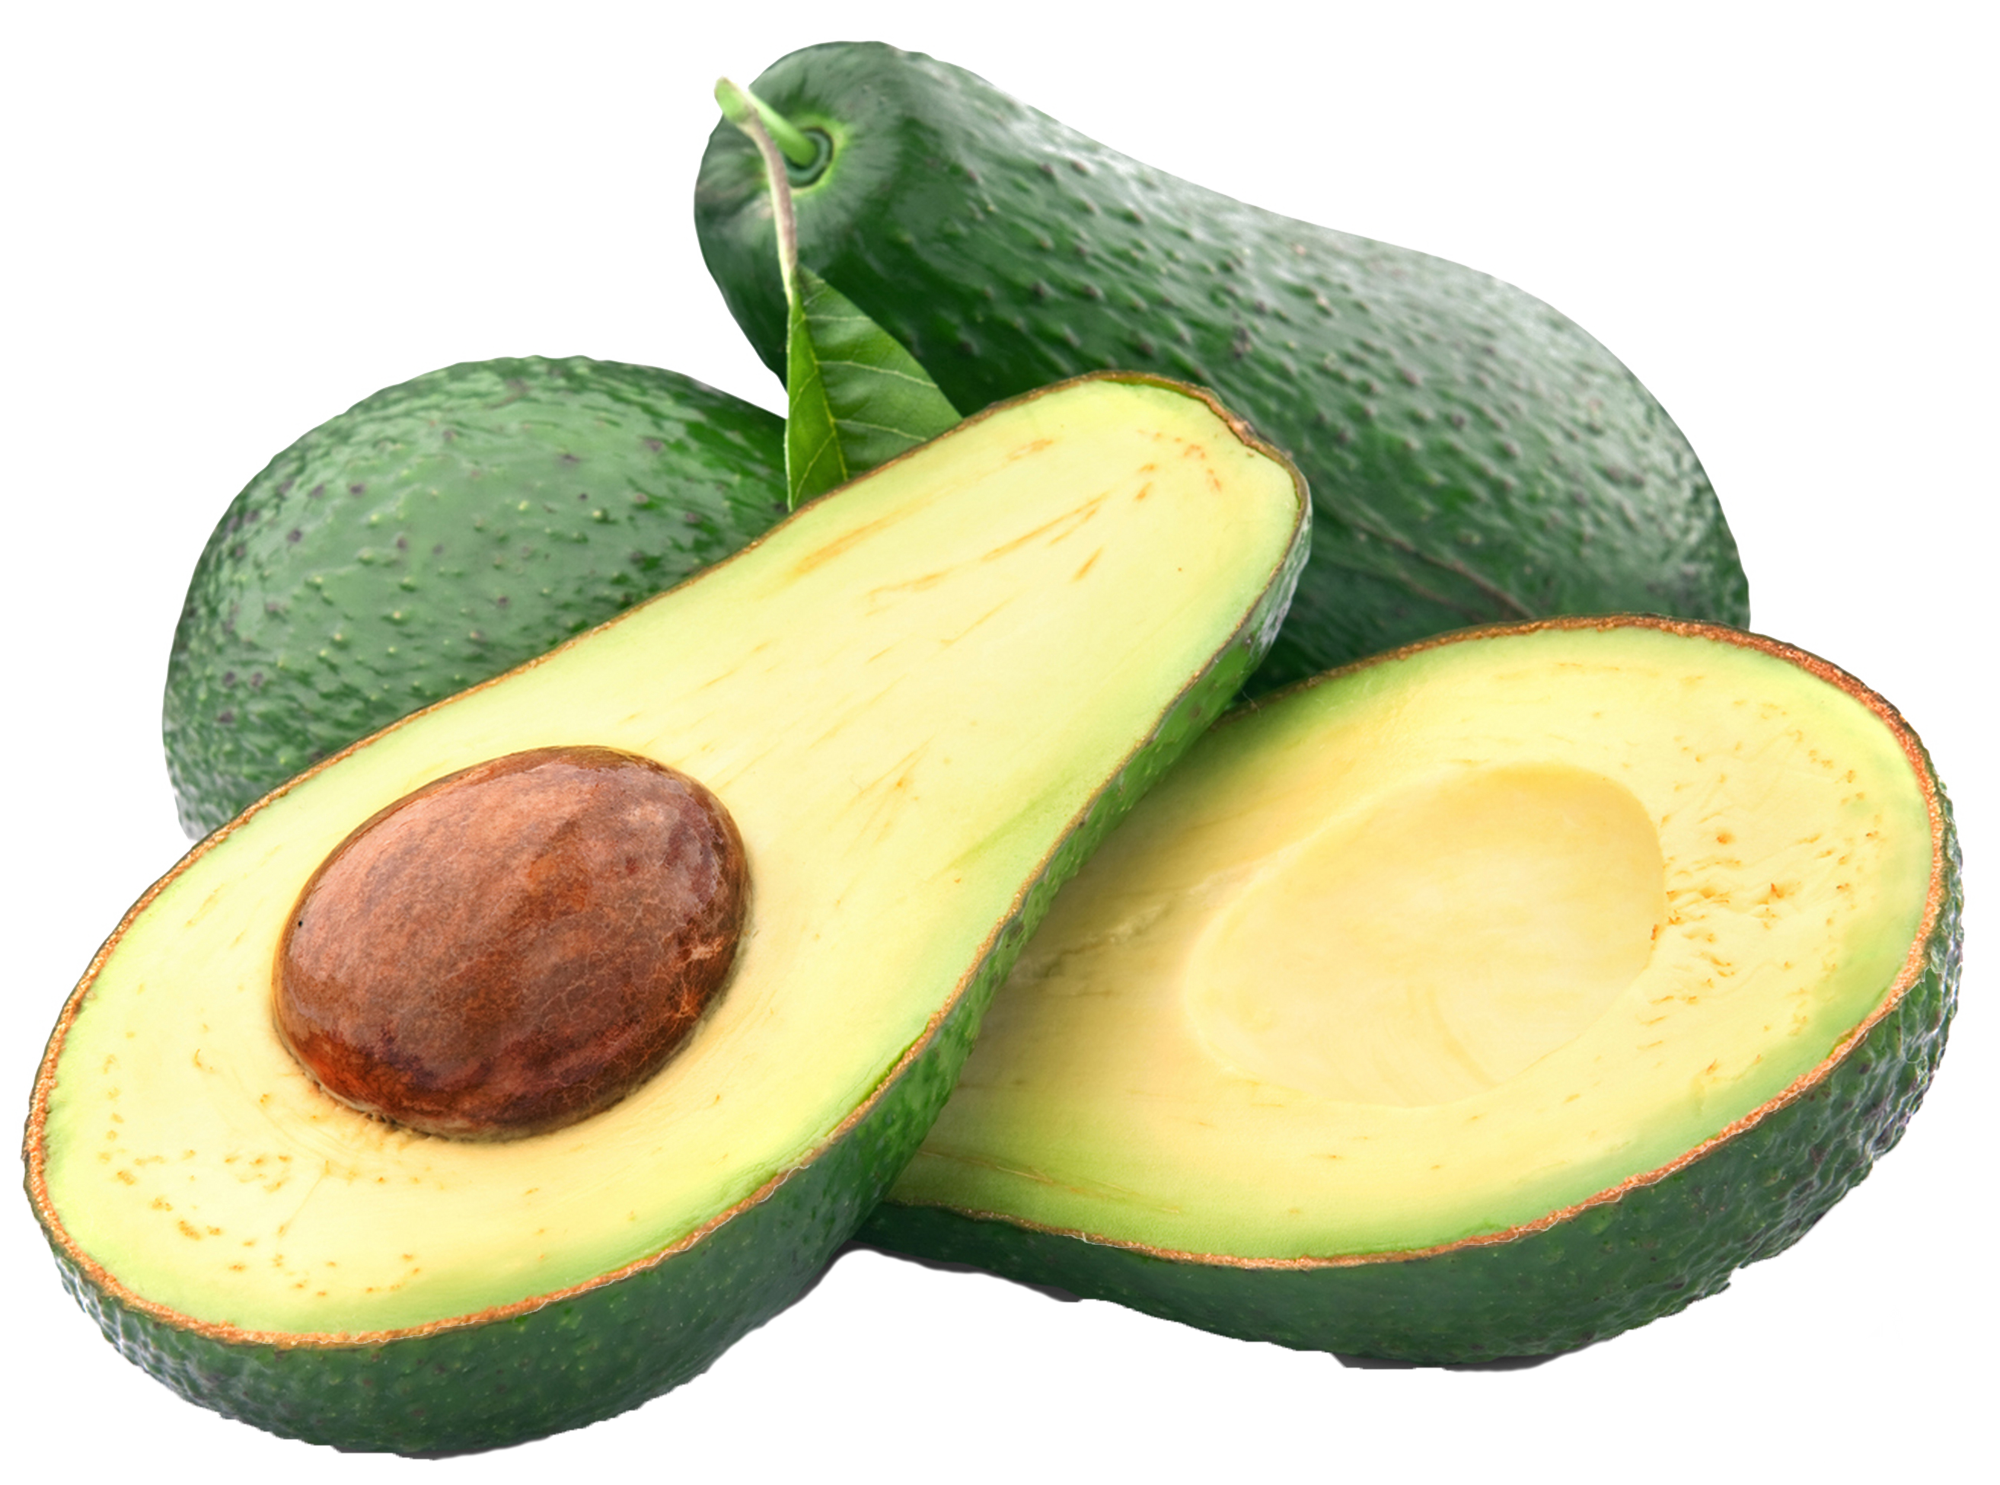 Avocado clipart large. Alligator pear png gallery